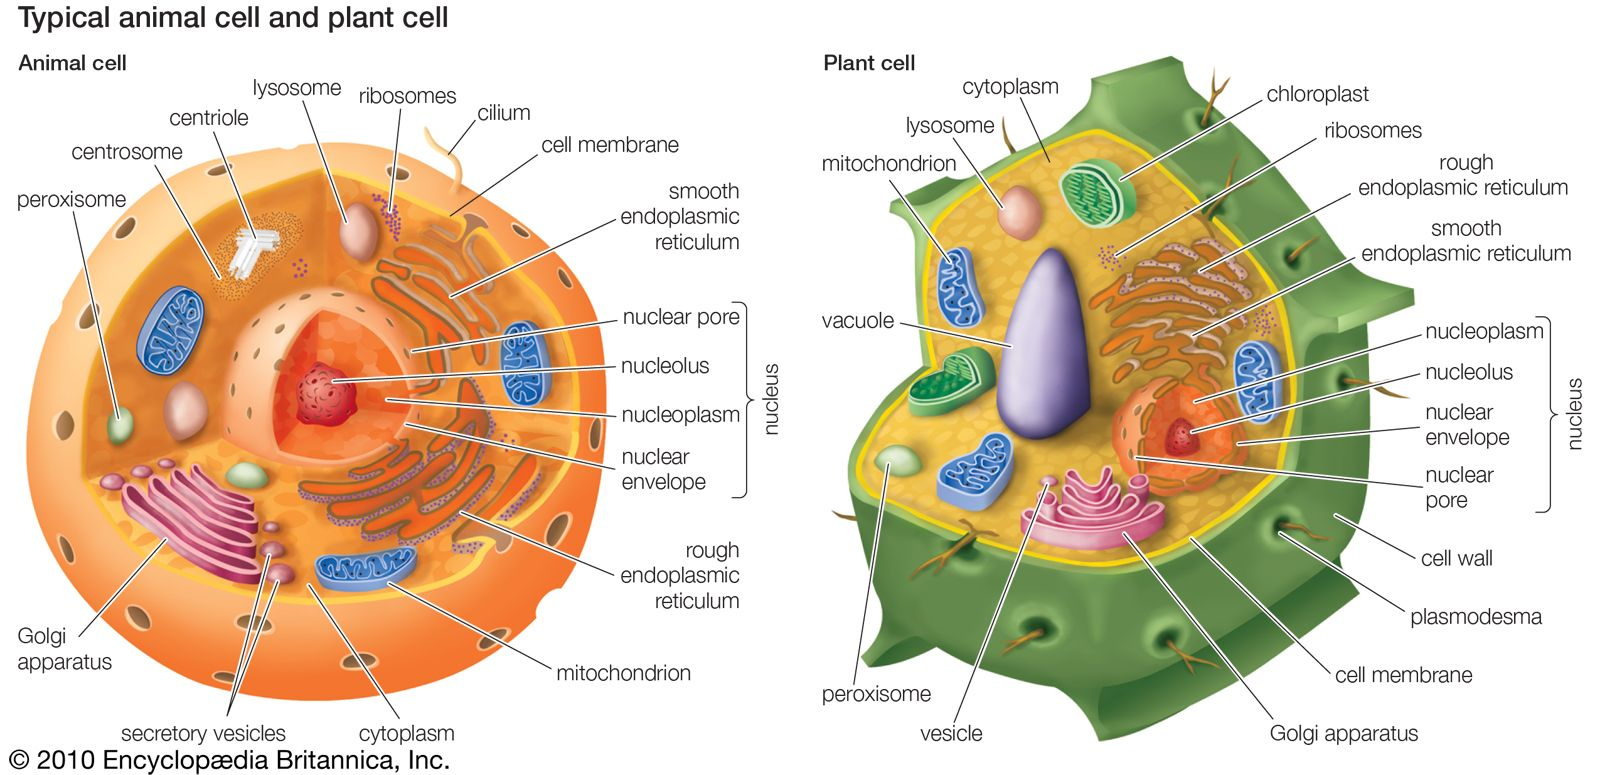 animal and plant cells world of sciencecraft achievements 6th plant cell diagram labeled animal cell diagram labeled human cell [ 1600 x 775 Pixel ]